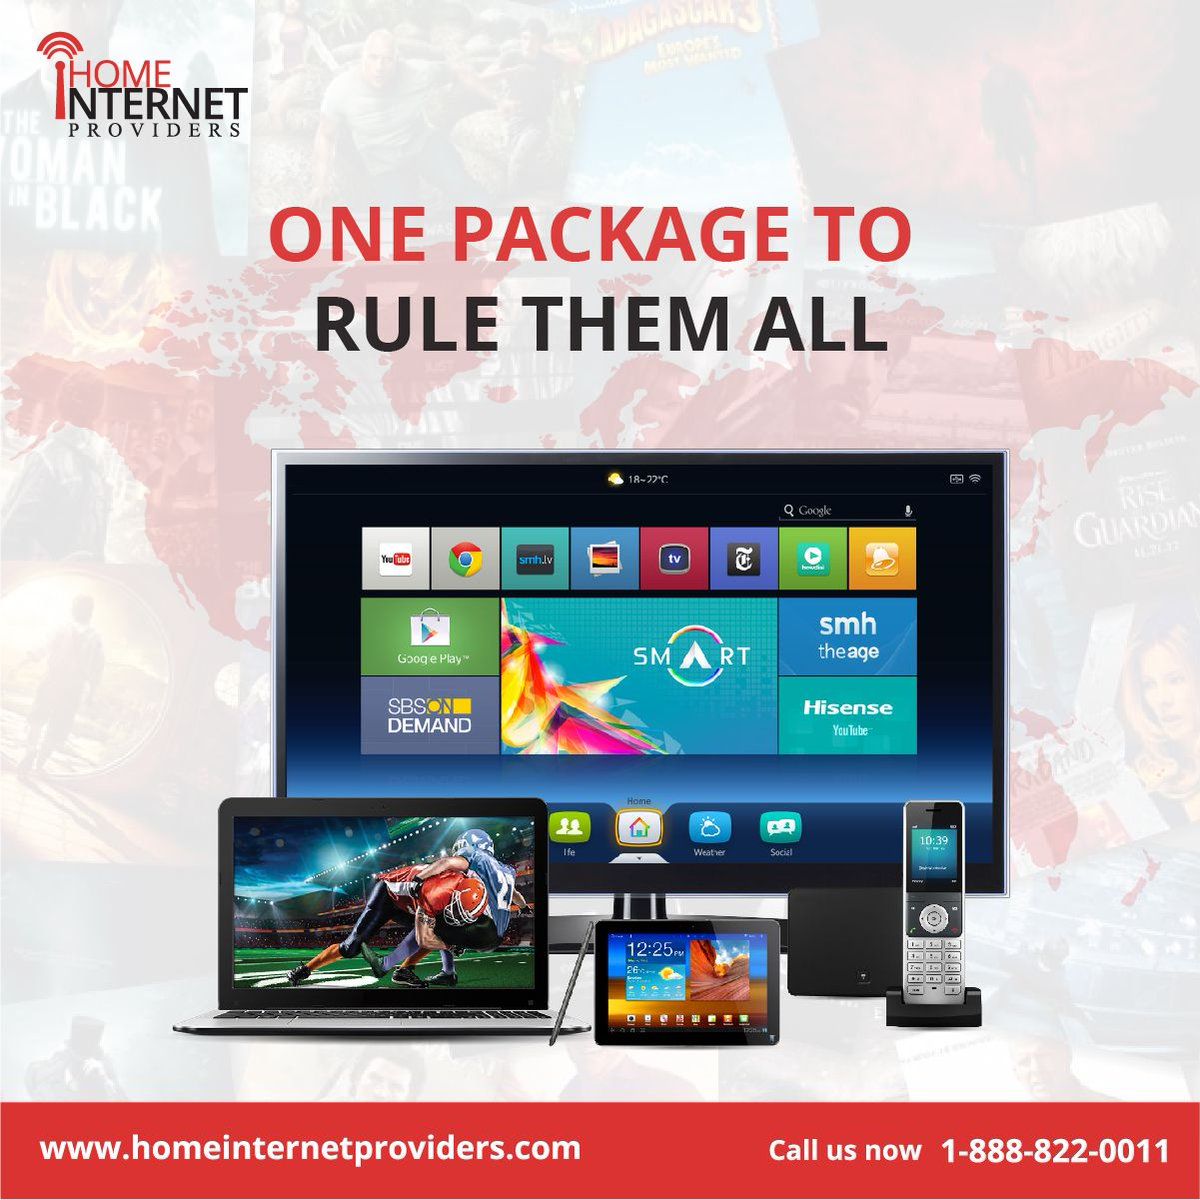 Tv And Internet Providers >> Home Internet Providers Homeinternetpro Twitter